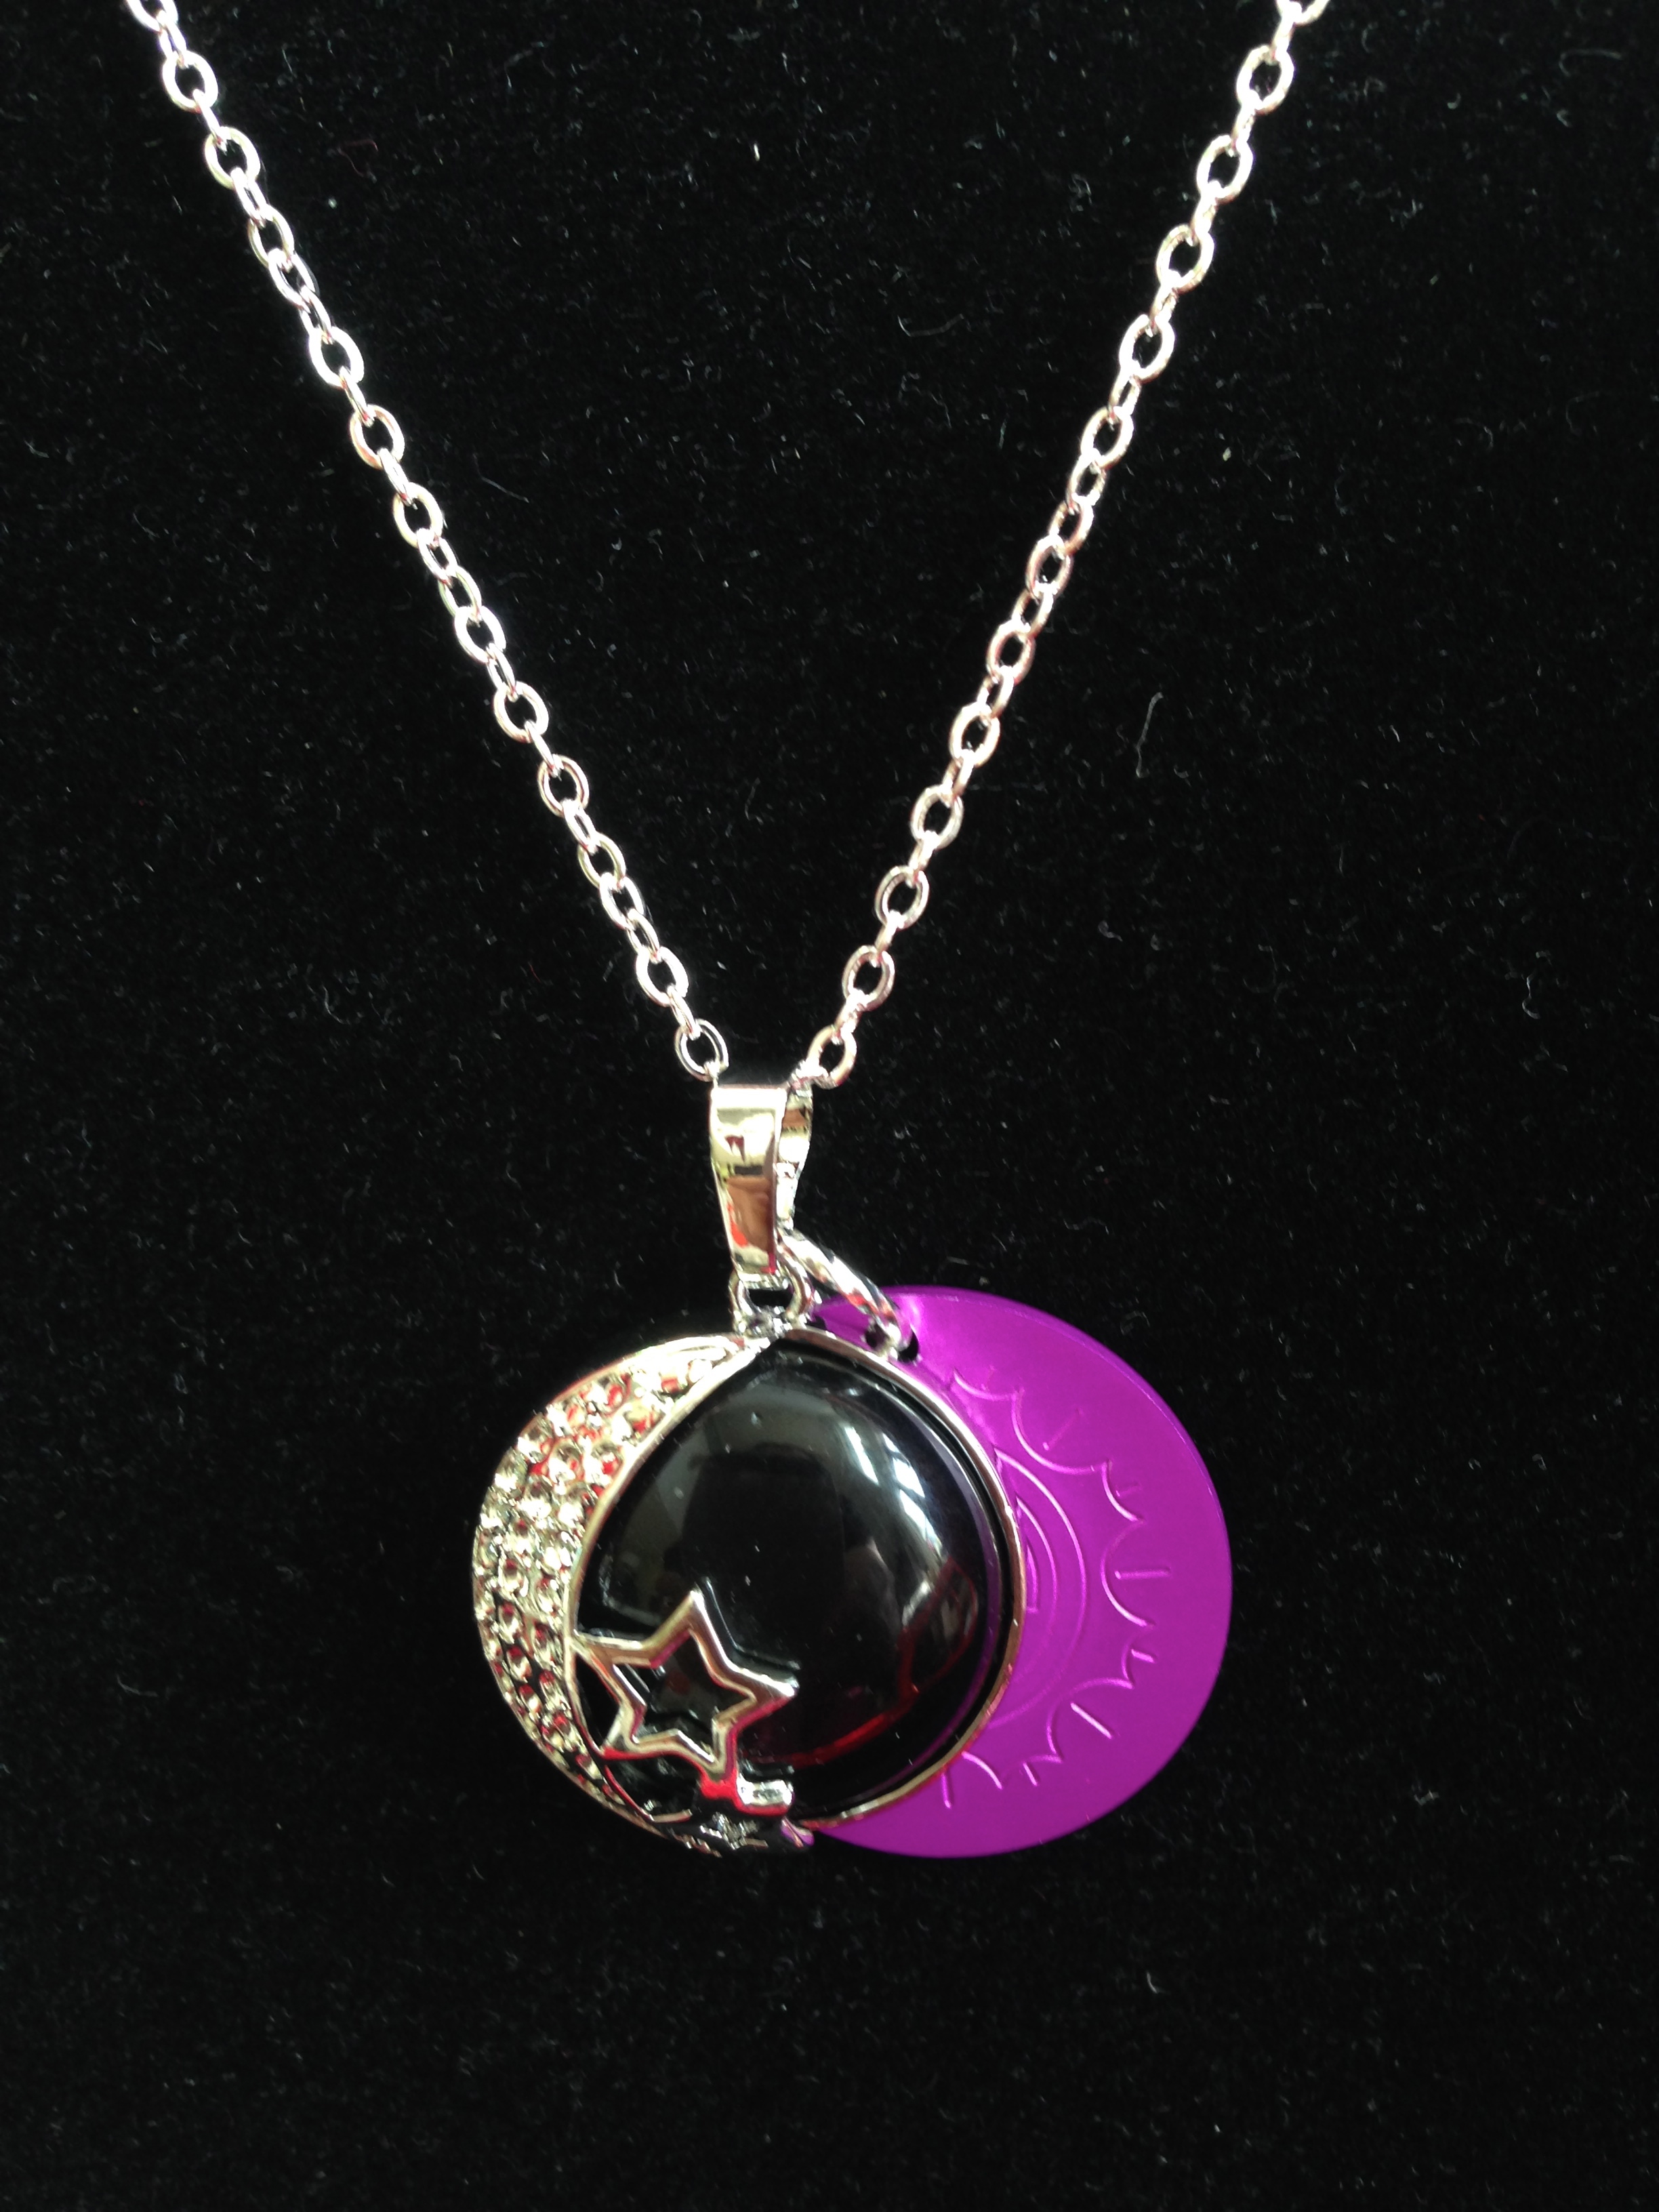 Black Moon & Stars with Energy Disk Necklace